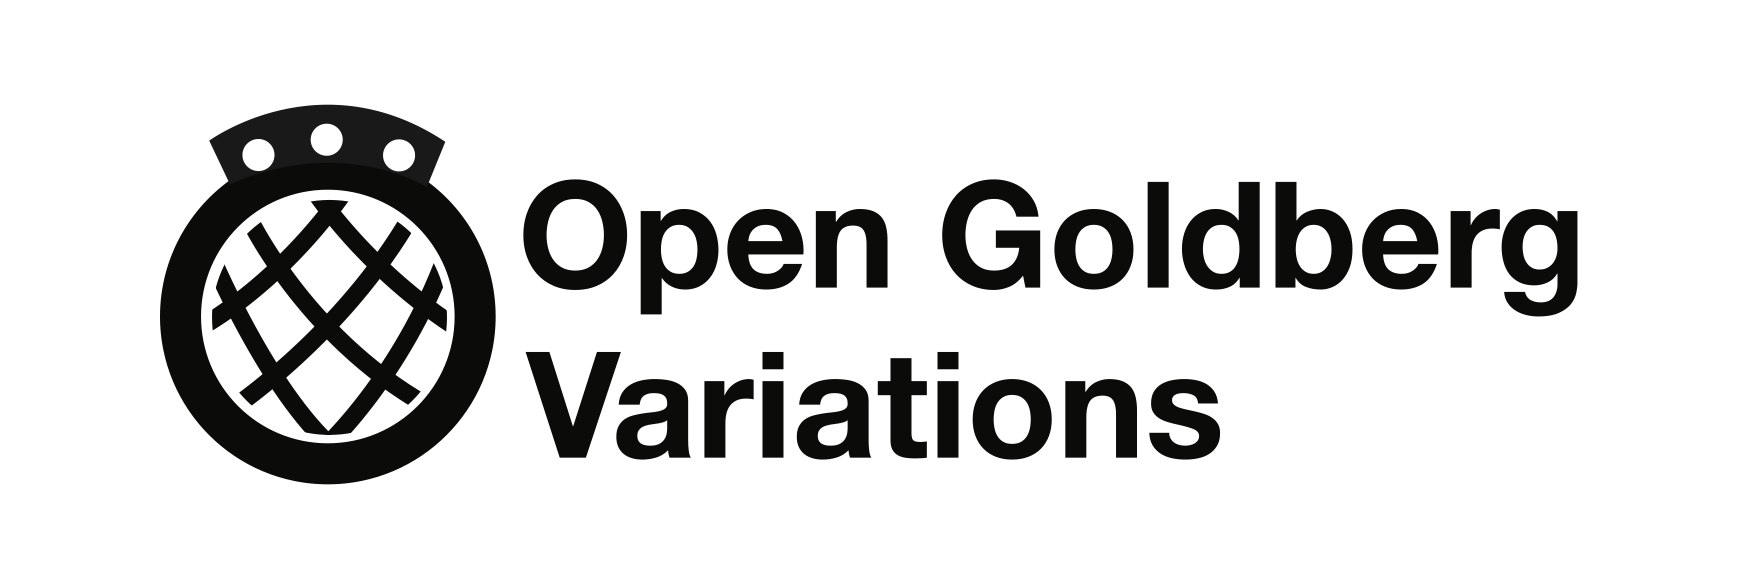 Open Goldberg Variations Logo